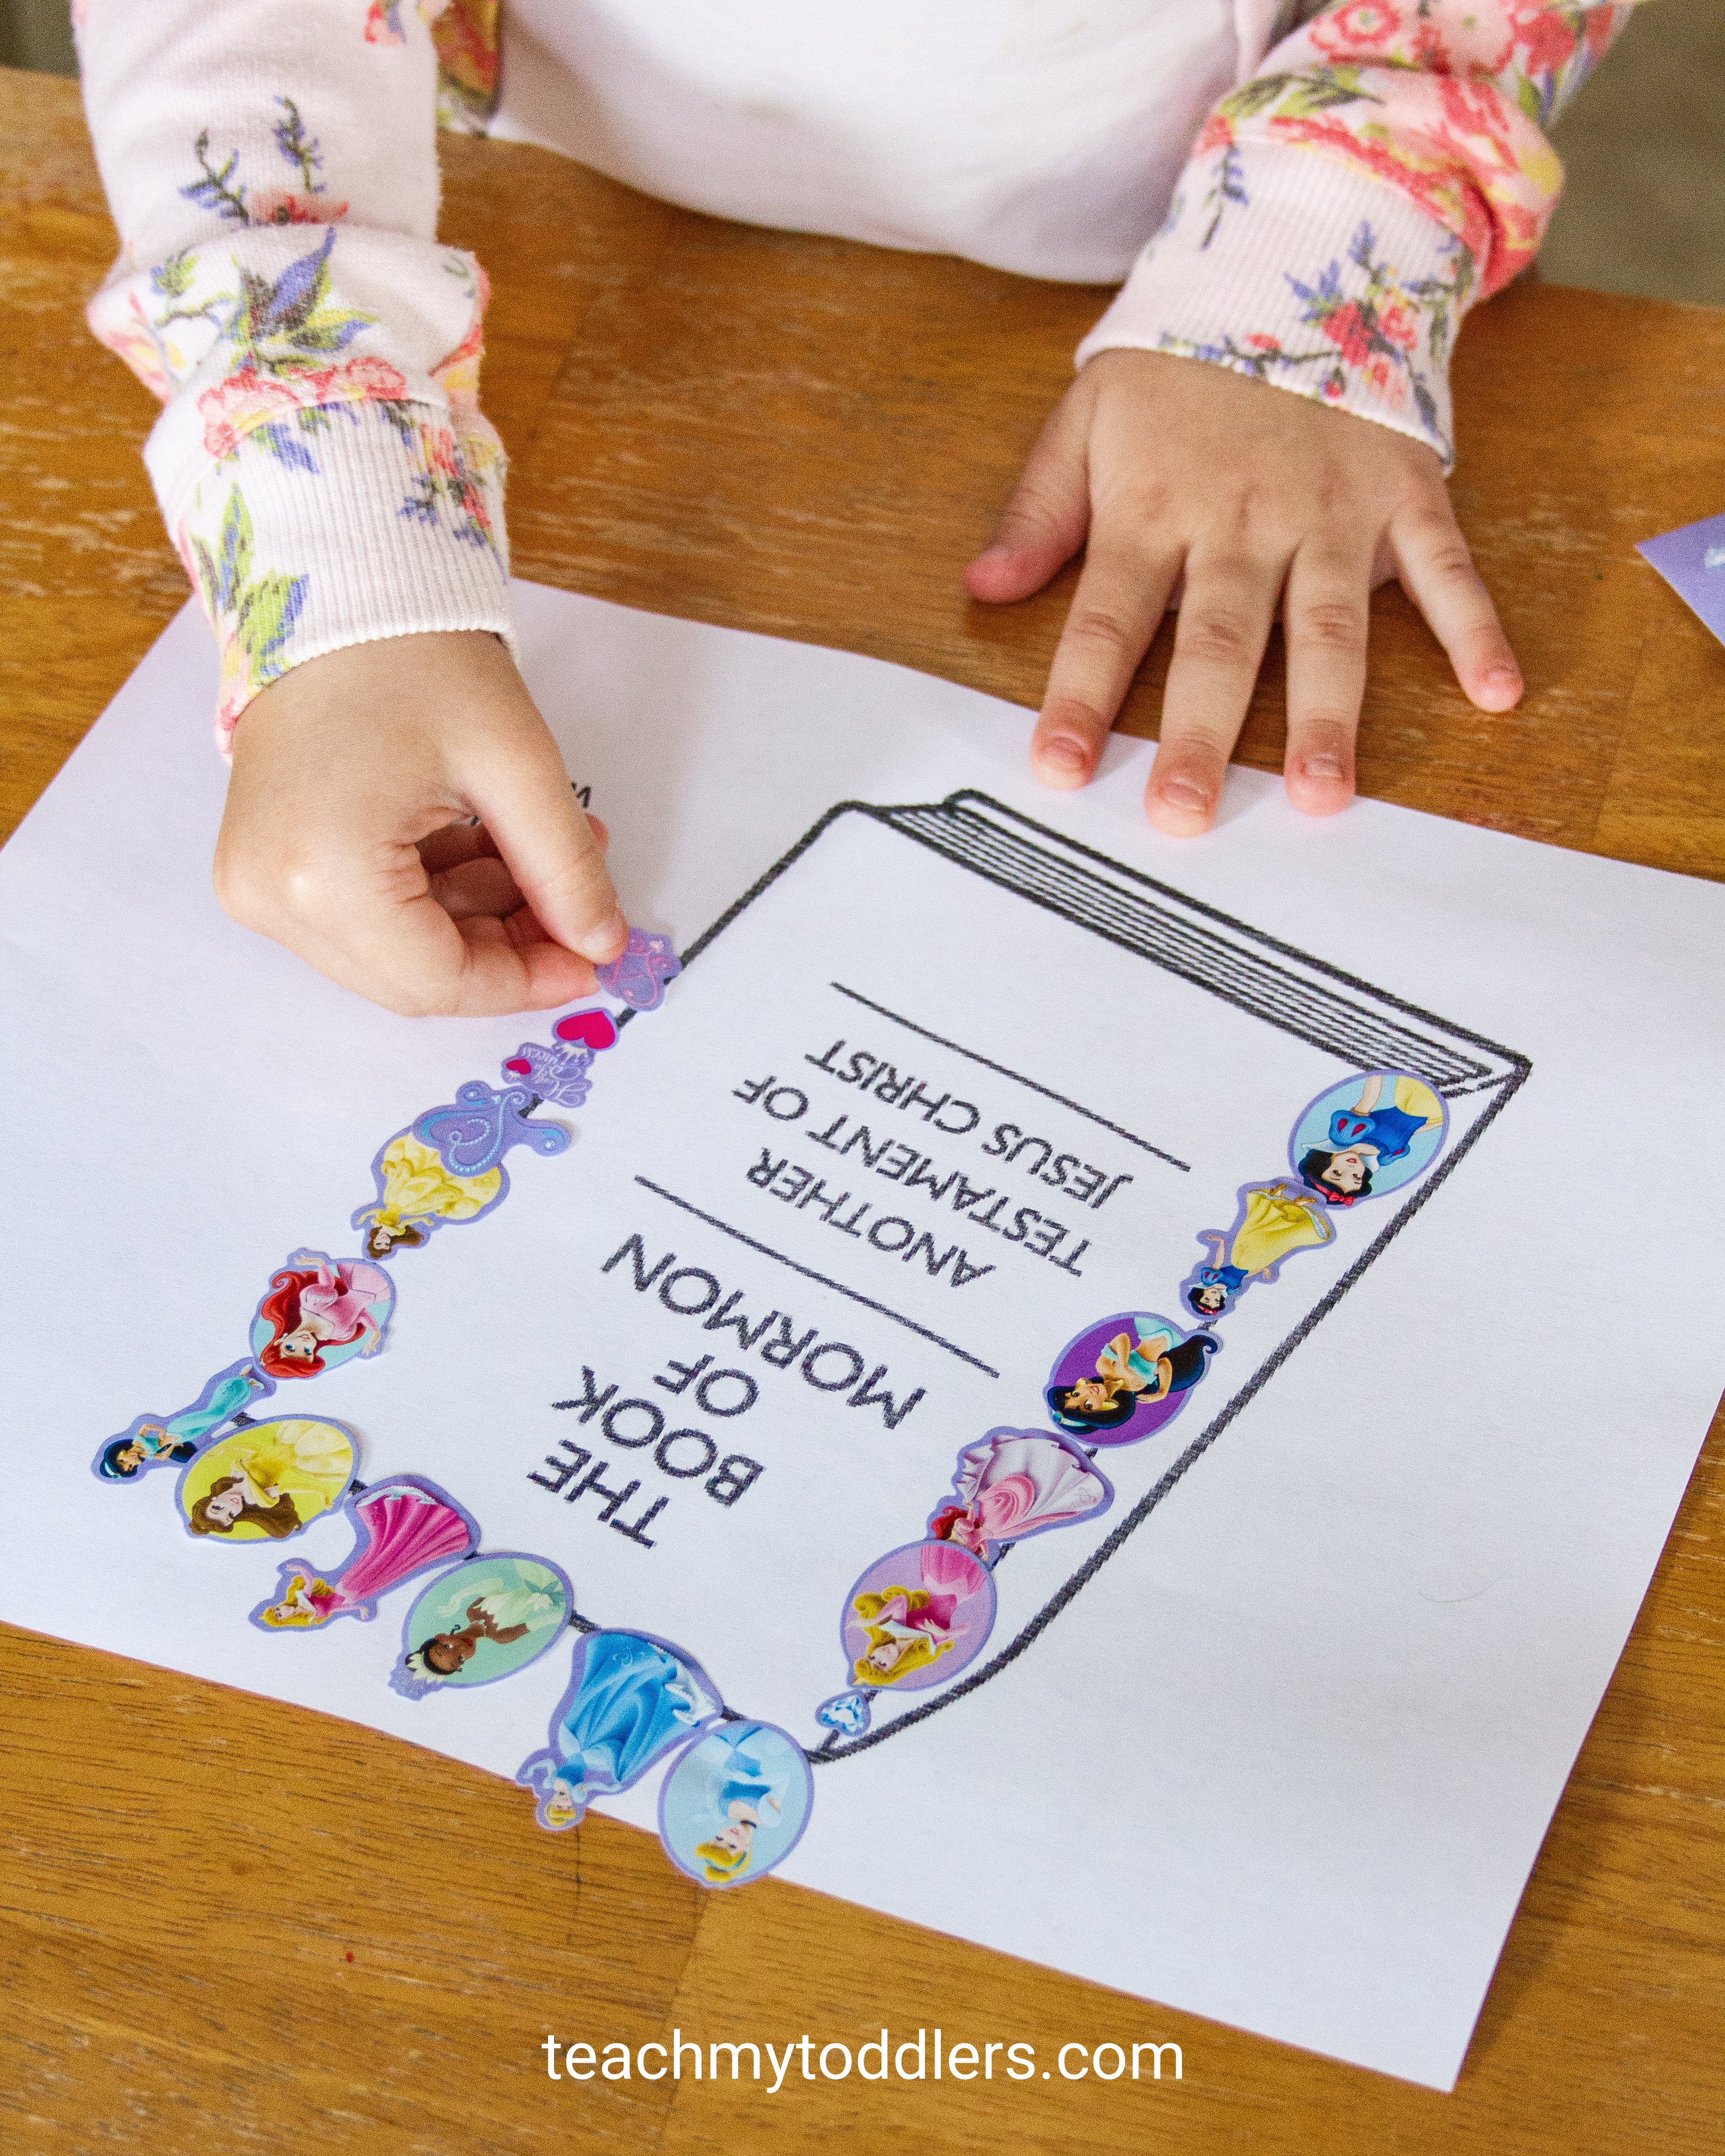 Print out these free sticker pages for toddlers during general conference